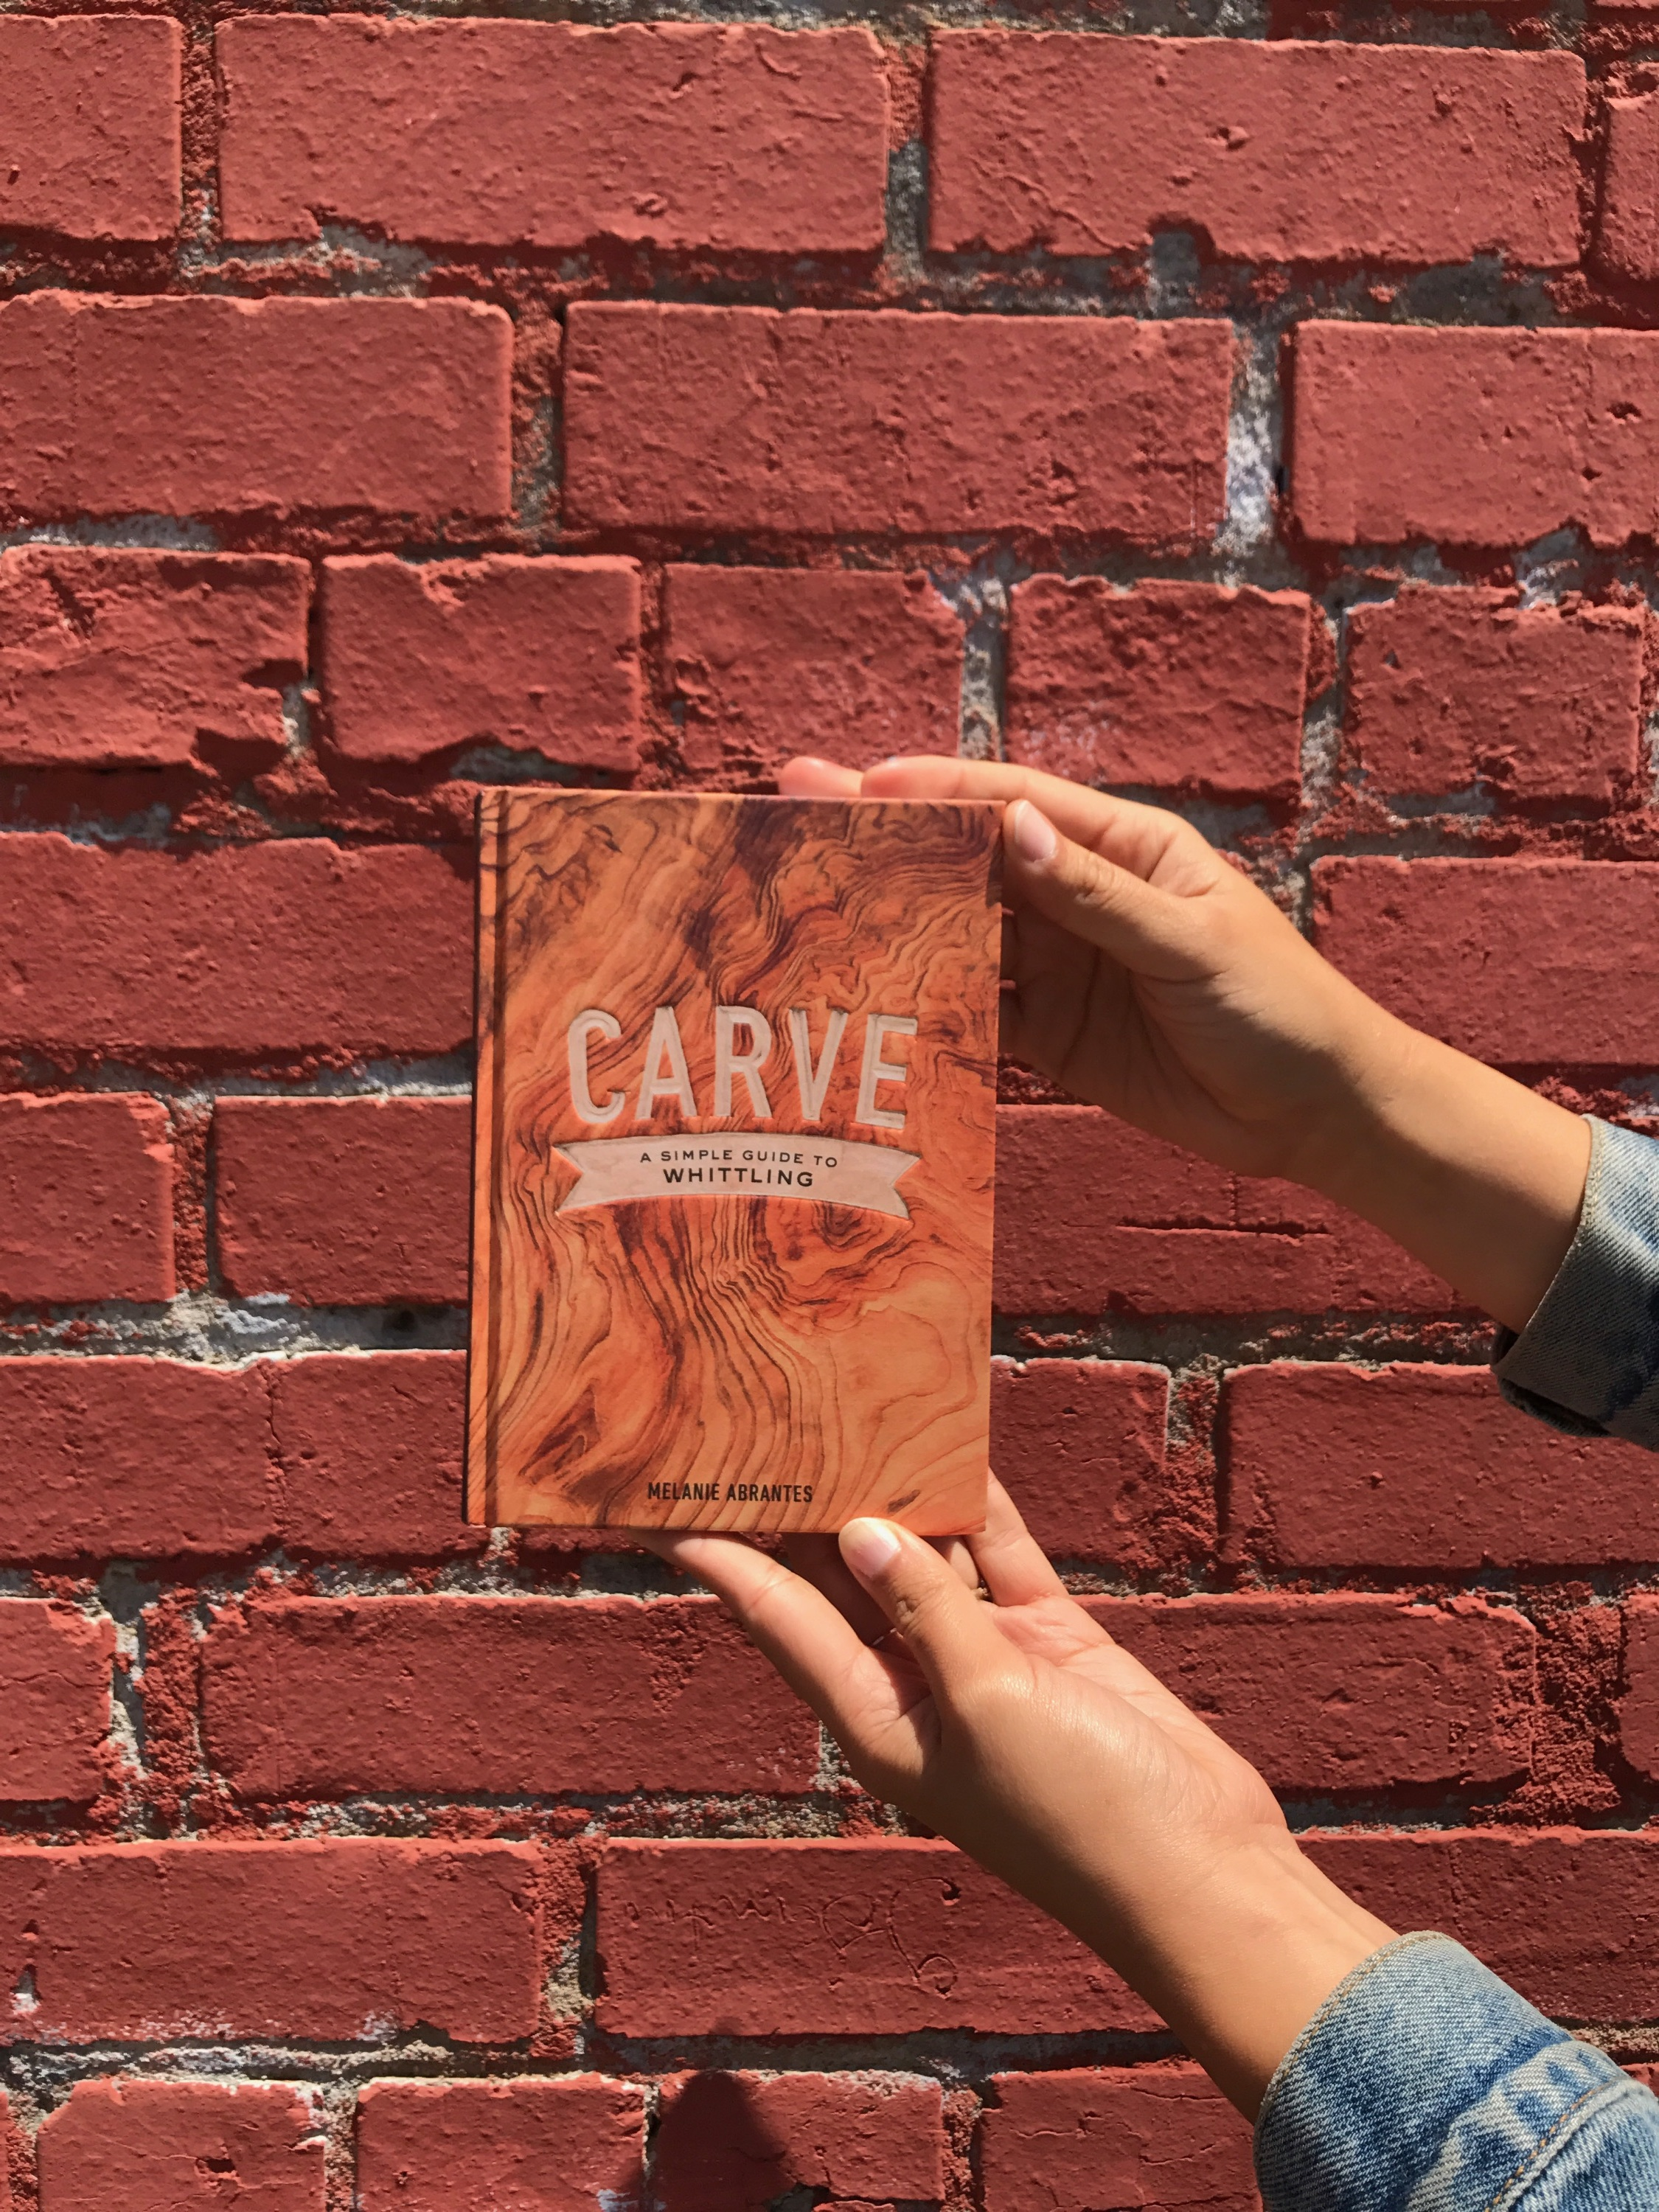 Pre-Order Carve - Ships out August 22, 2017. Get a signed copy in the shop TODAY!